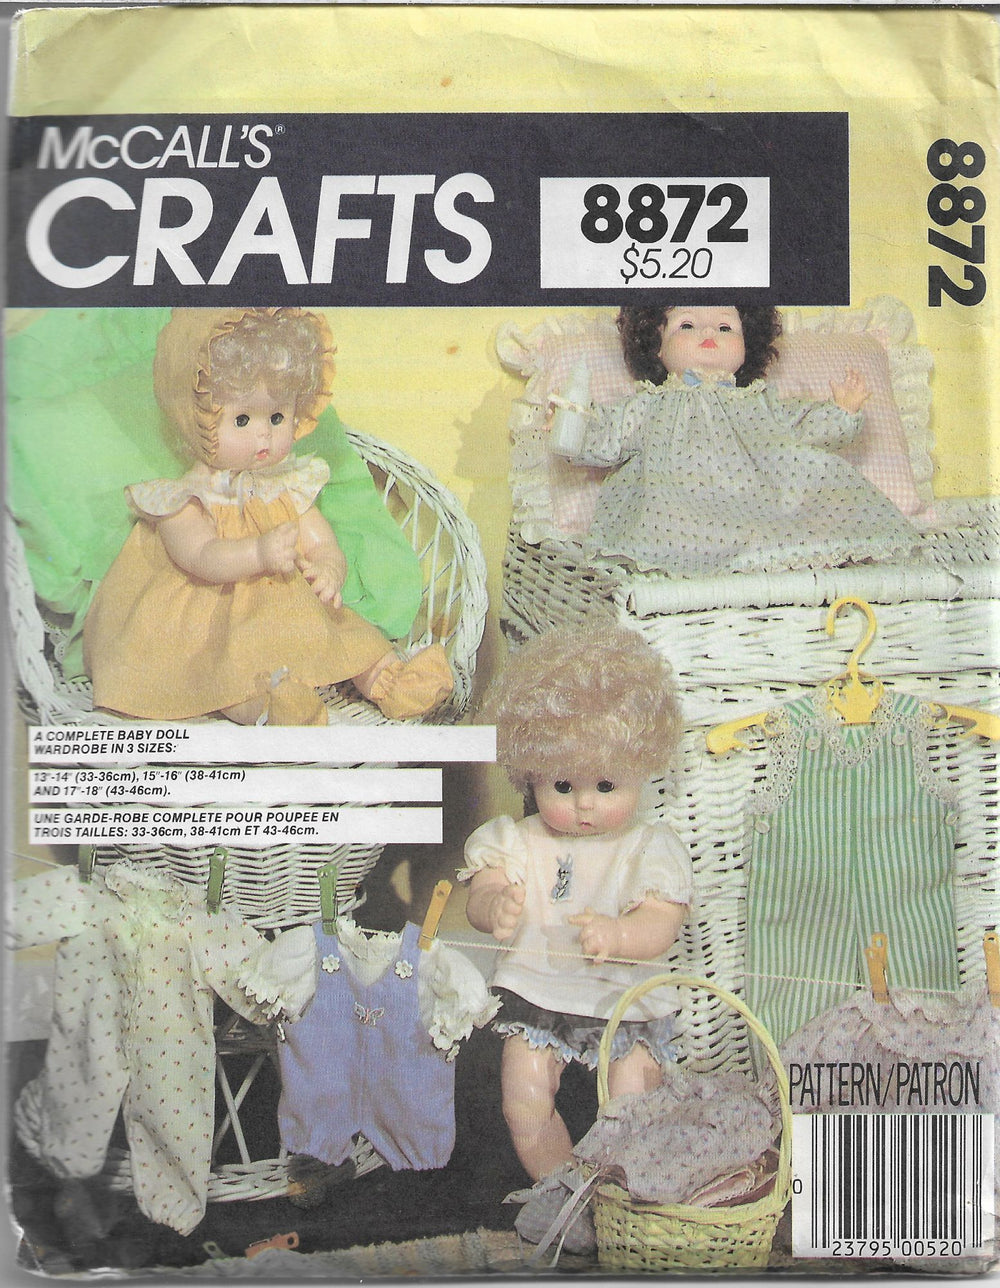 mccalls 8872 doll clothes vintage pattern